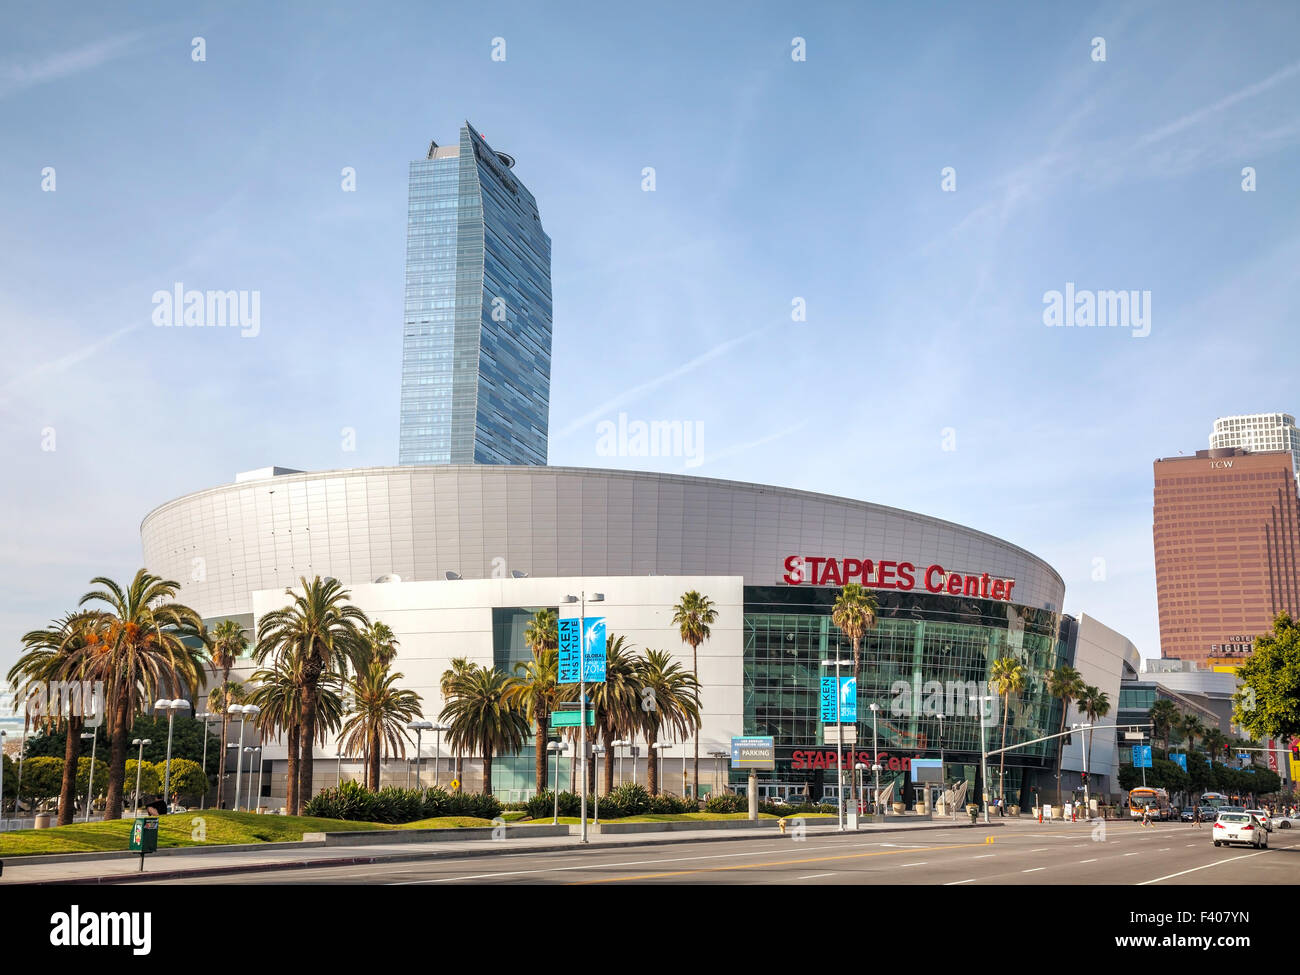 Staples Center in downtown Los Angeles, CA - Stock Image